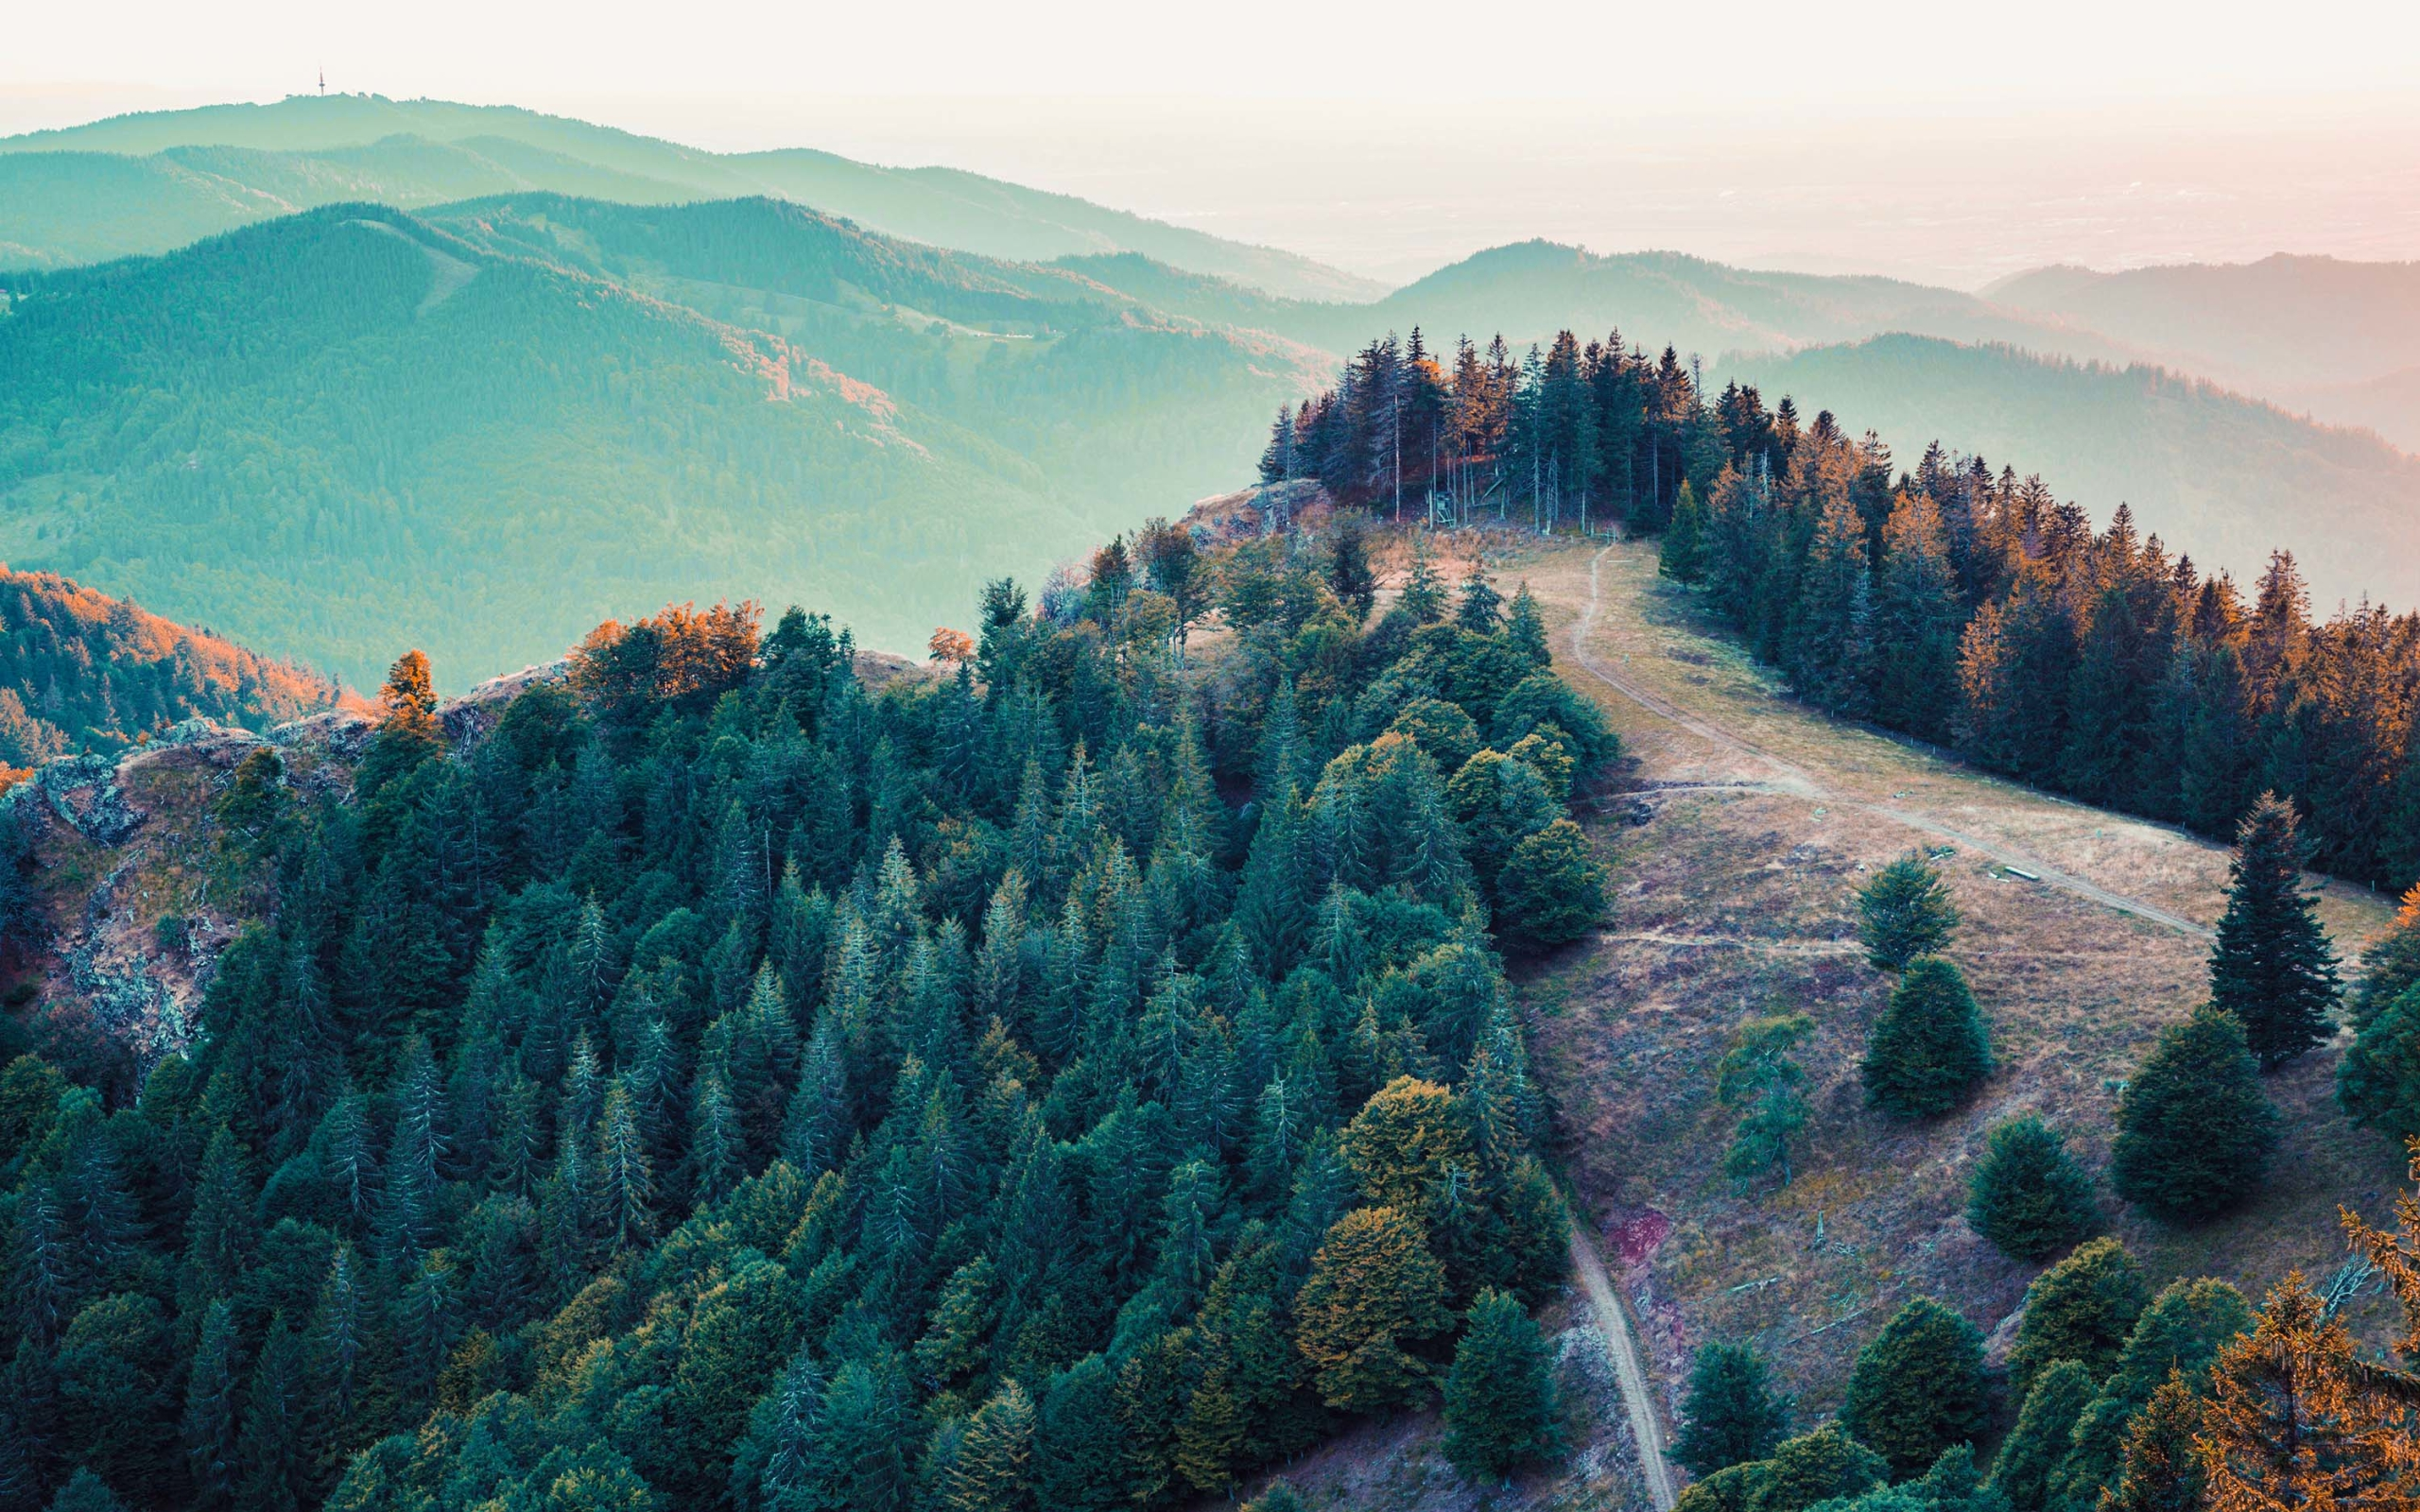 Wallpaper of Mountain, Trees, Nature, Earth background & HD image